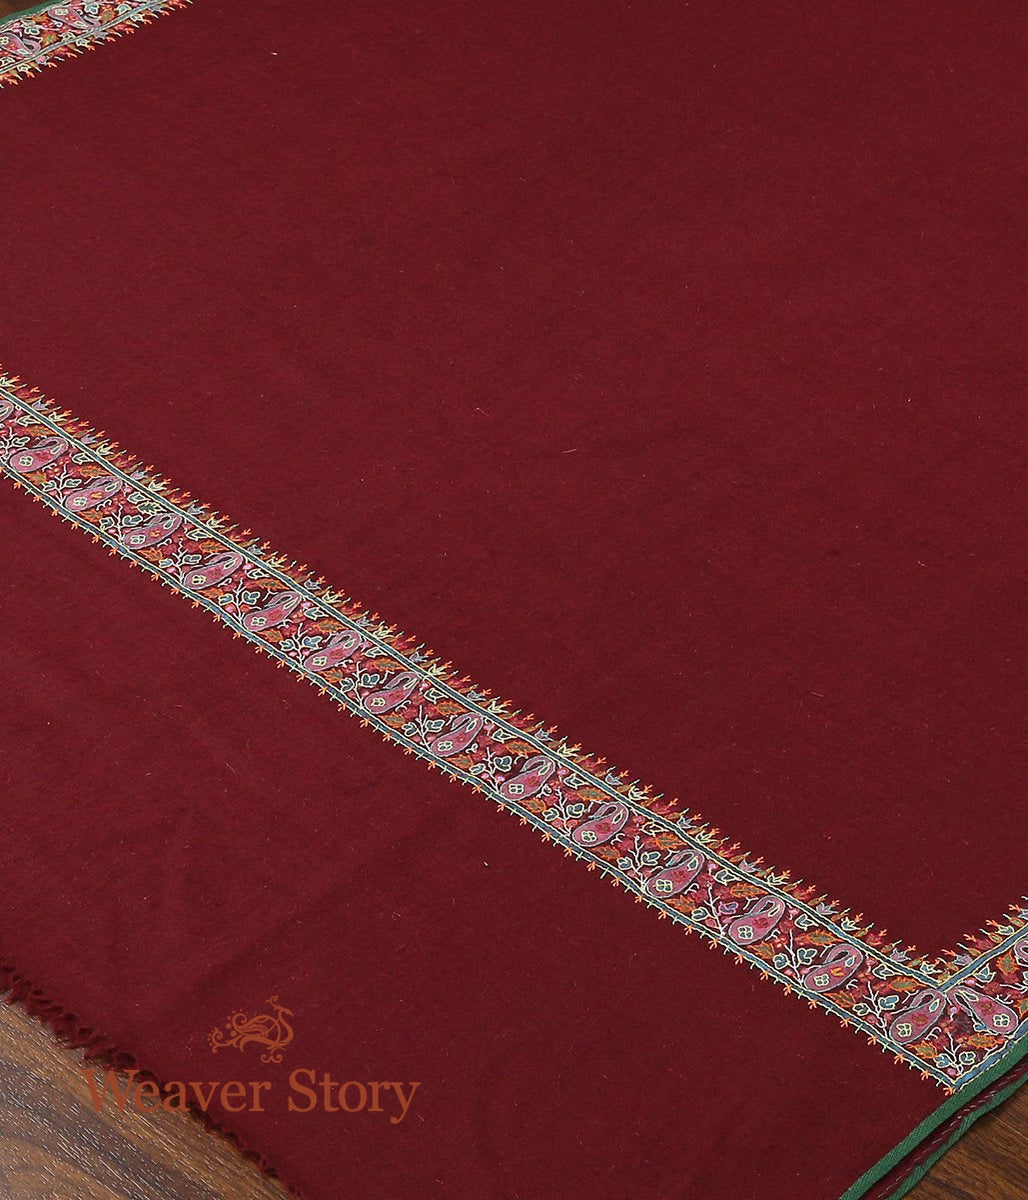 Maroon Pure Pashmina Shawl with Applique Border in Kalamkari